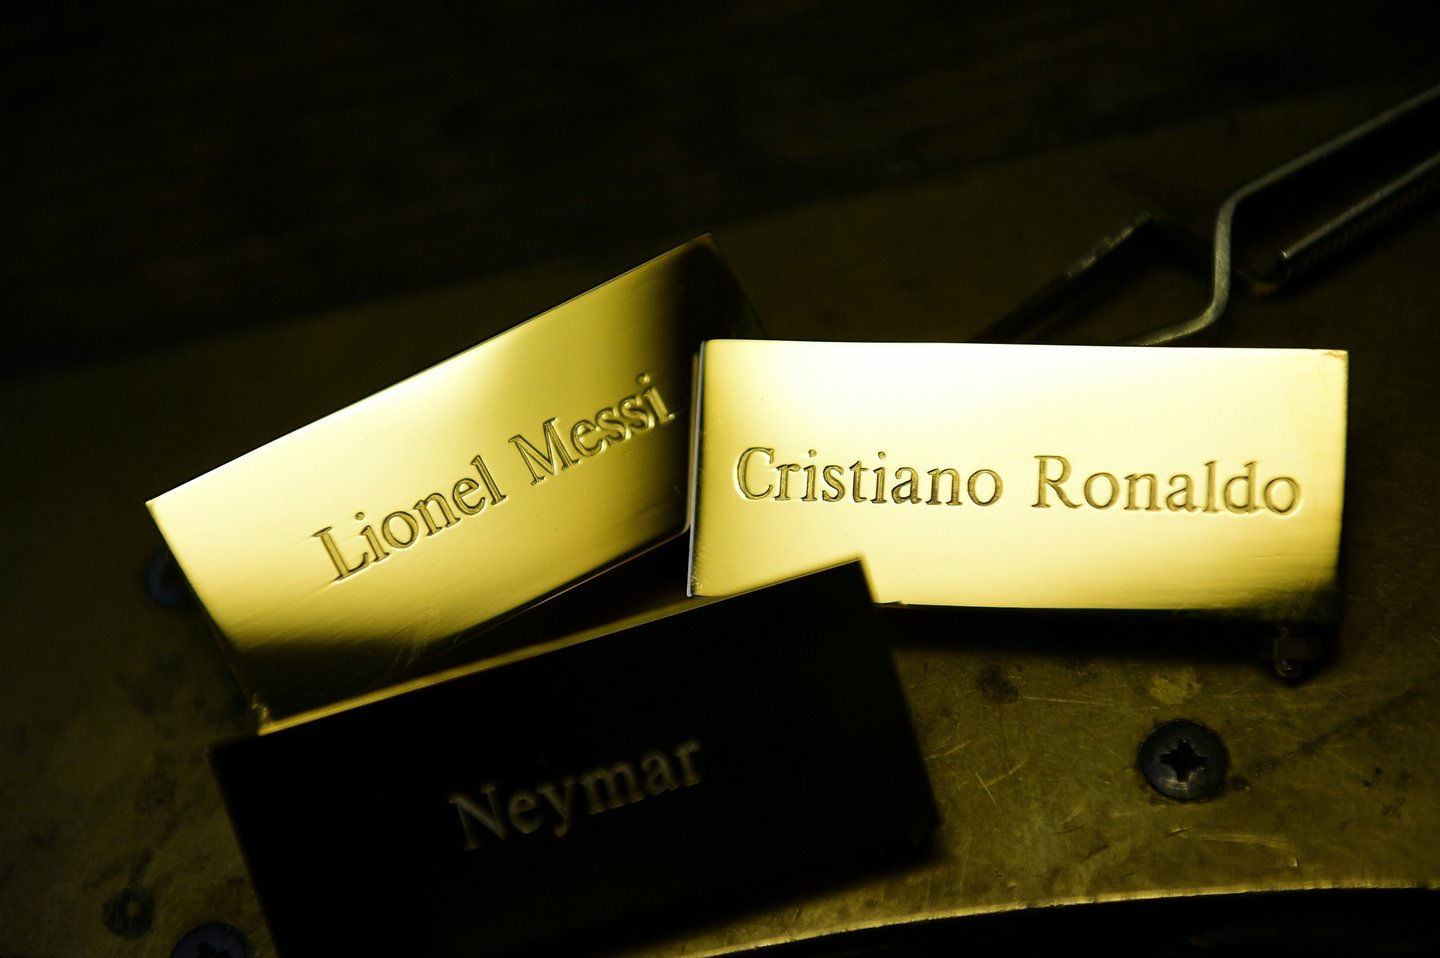 """A picture taken on December 15, 2015 shows three plaques reading, """"Cristiano Ronaldo"""", """"Lionel Messi"""" and """"Neymar"""" at the Mellerio jewellers in Paris, as part of the crafting of the Ballon d'Or 2015 Fifa award. Barcelona's Argentinian forward Lionel Messi, Barcelona's Brazilian forward Neymar and Real Madrid's Portuguese forward Cristiano Ronaldo were shortlisted for the Ballon d'Or 2015, Fifa's annual football award given to the male player considered to have performed the best in the previous calendar year, and that will be awarded on January 11, 2016 during a gala event in Zurich. / AFP / FRANCK FIFE (Photo credit should read FRANCK FIFE/AFP/Getty Images)"""